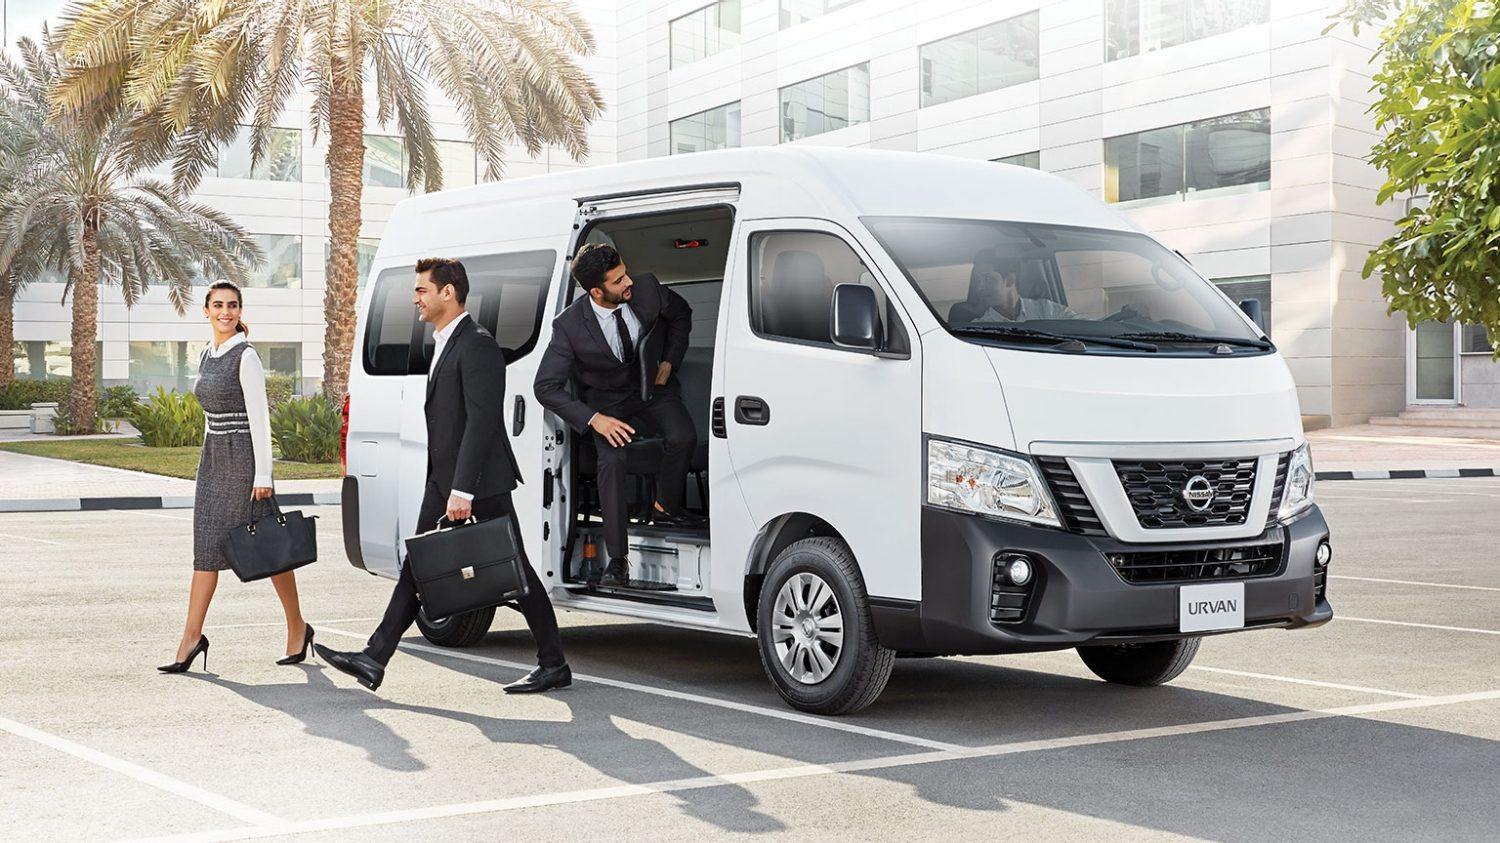 The new Nissan Urvan 2018